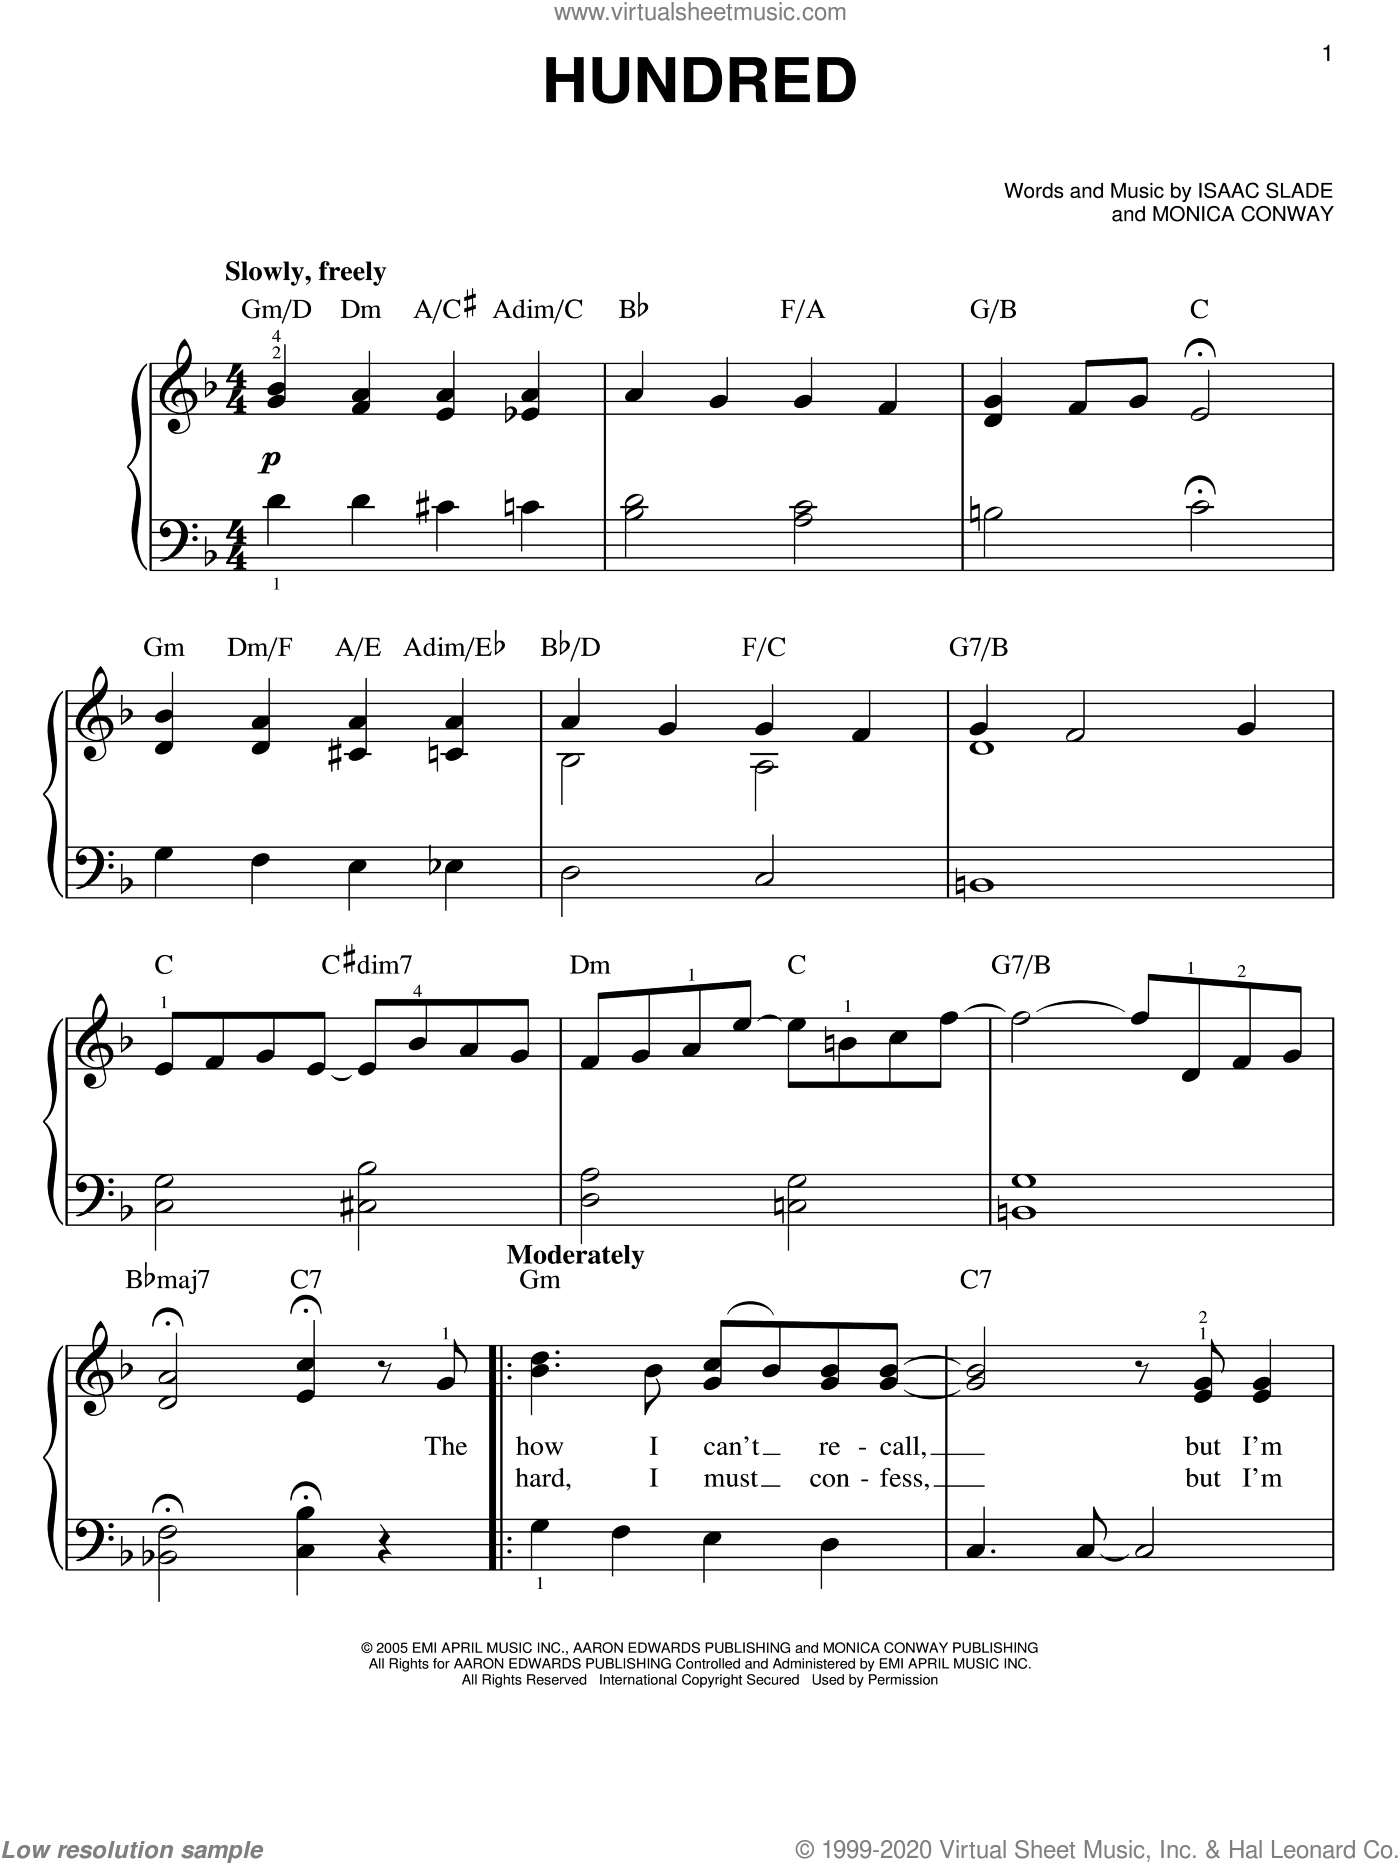 Hundred sheet music for piano solo by The Fray, Isaac Slade and Monica Conway, easy skill level